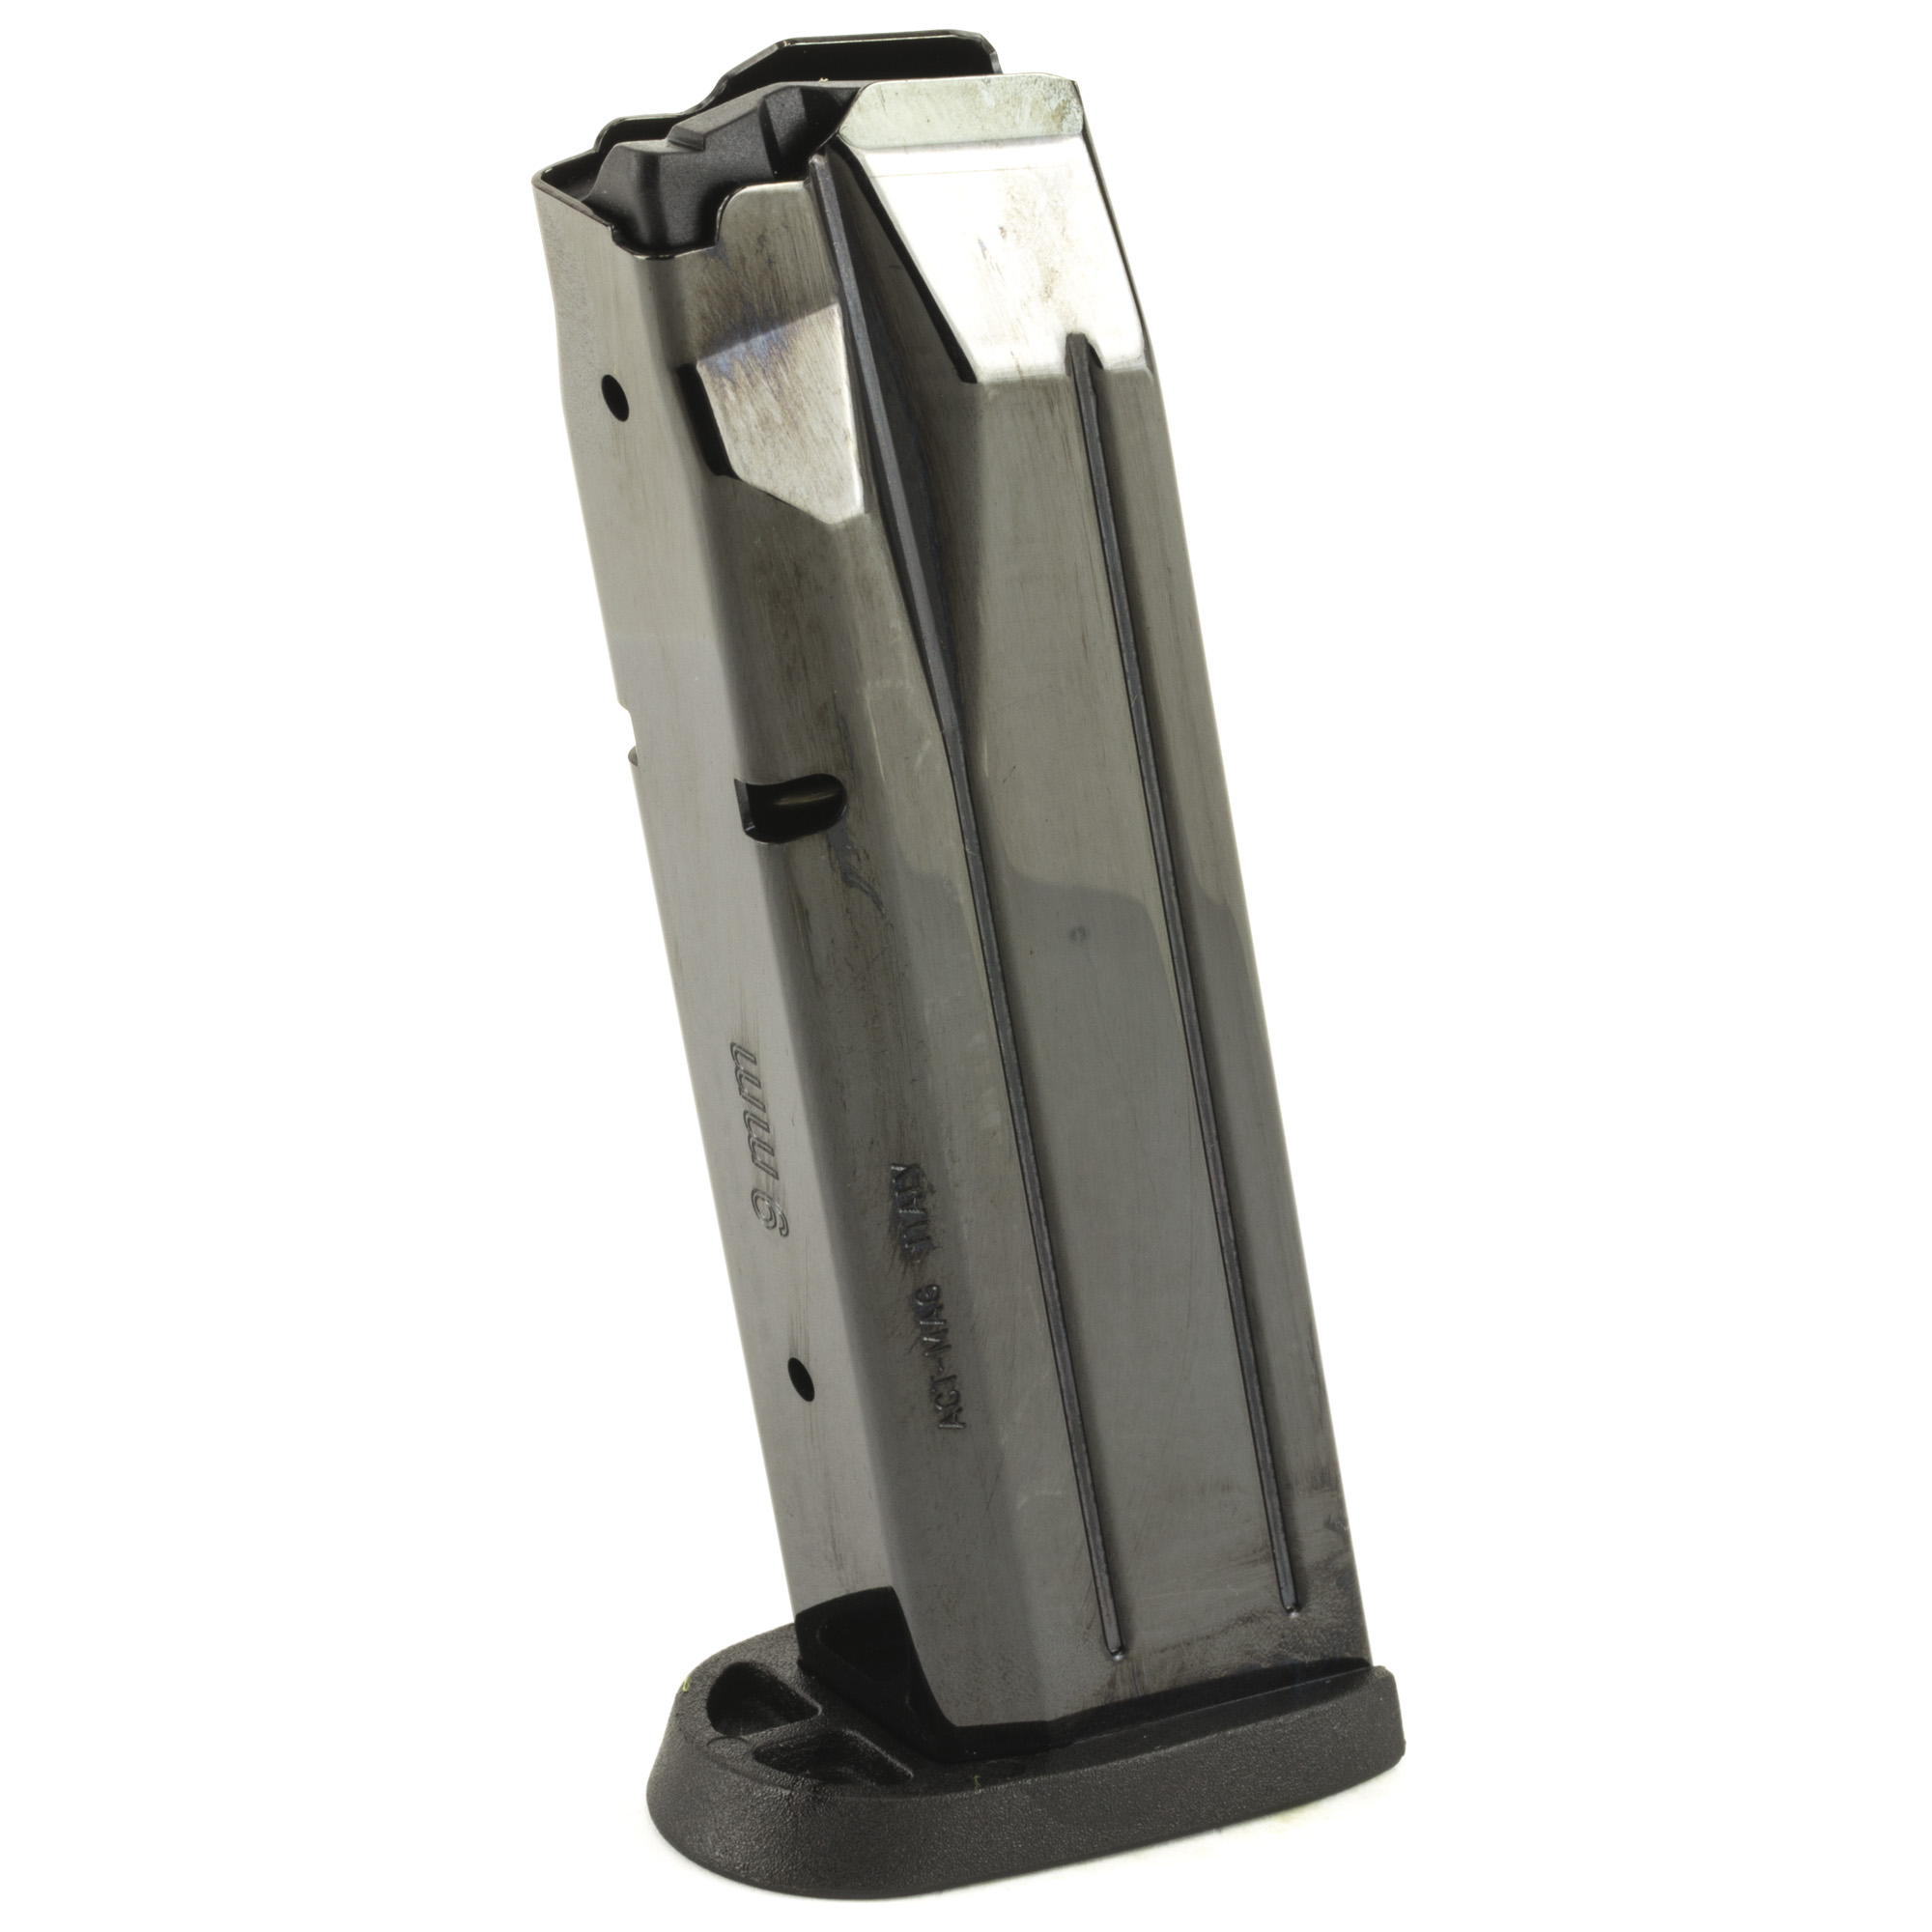 This M&P ACT-MAG magazine is manufactured to the exact same specifications and tolerances used by Smith & Wesson and uses high quality manufacturing materials which guarantees excellent fit and reliable operation. This magazine is designed for a flush fit on a full-size M&P handgun.